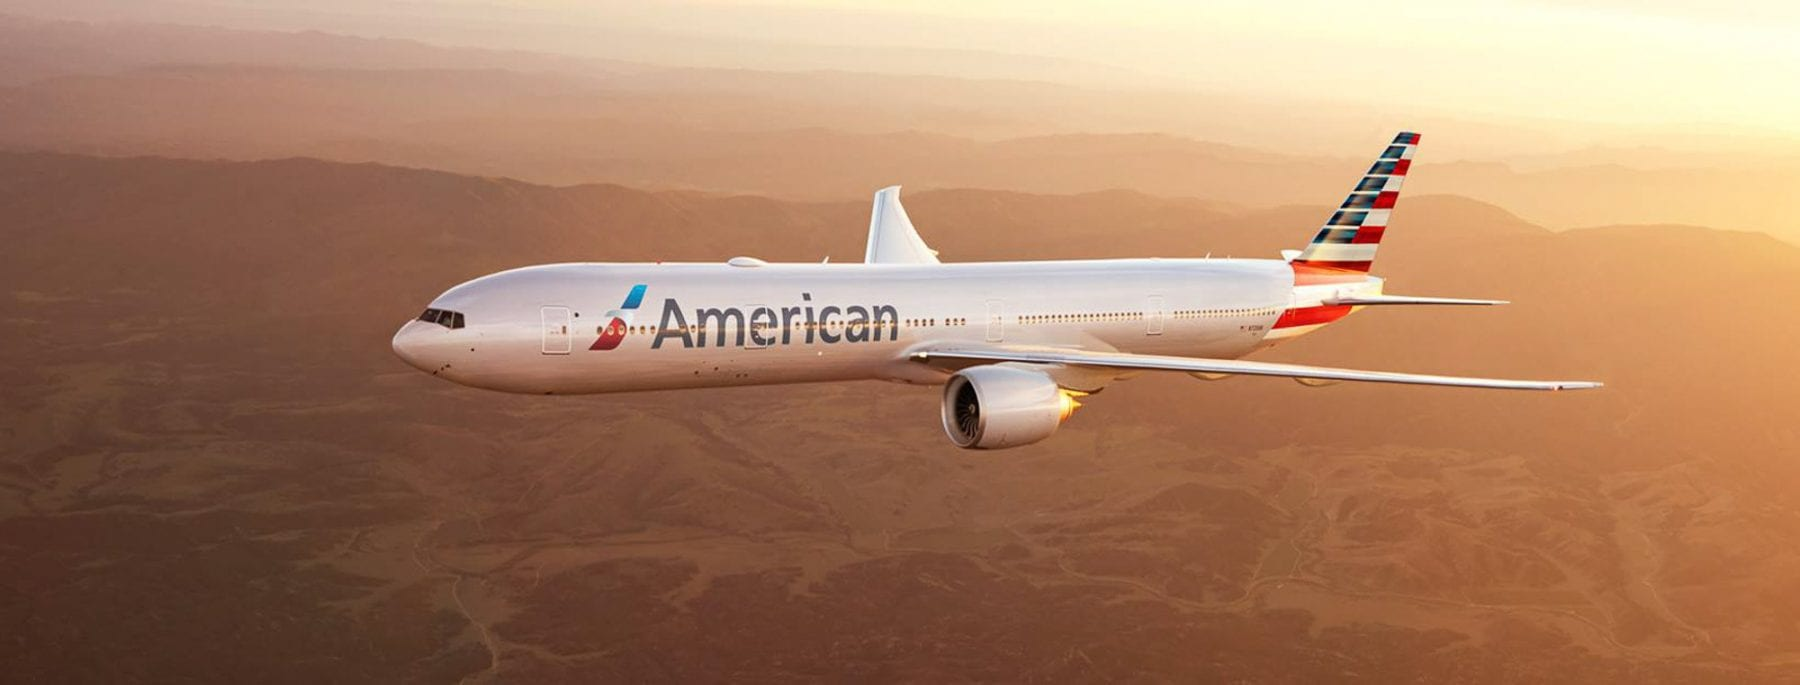 """American Airlines – """"No More Grounded Planes!"""""""